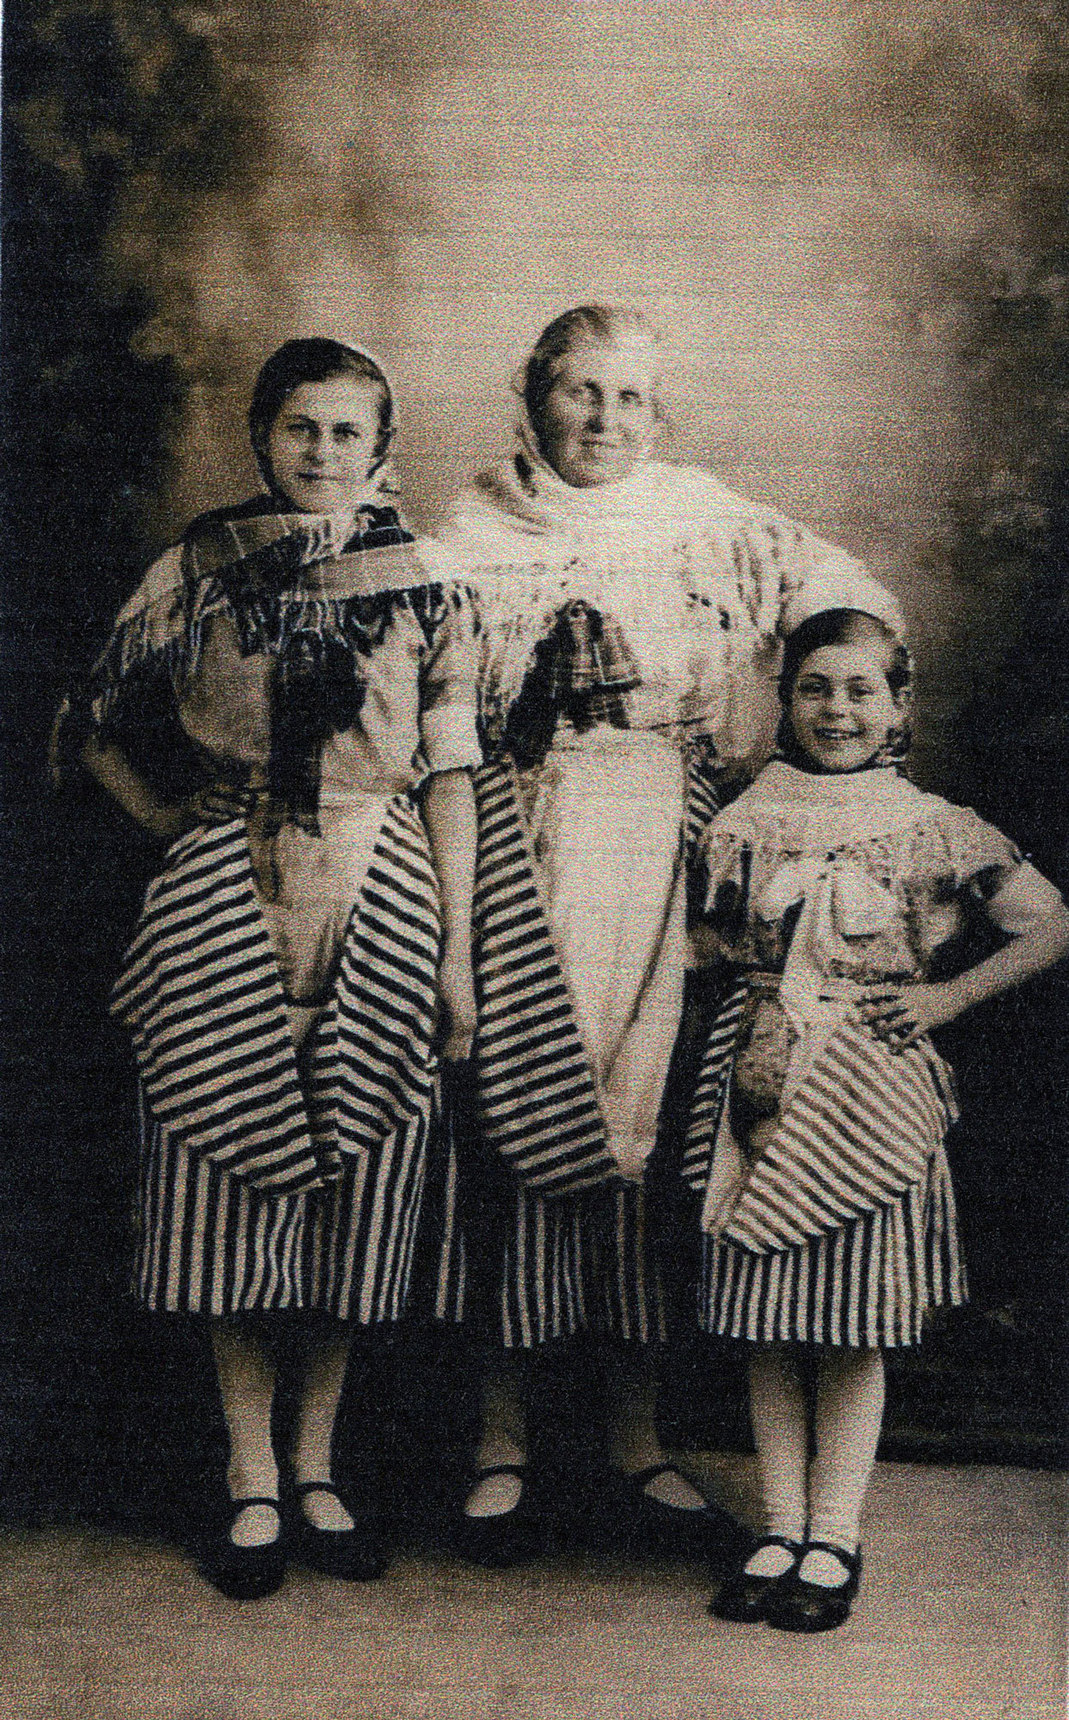 Studio Portrait Newhaven Fishwife And Fishergirls, 26 March 1933